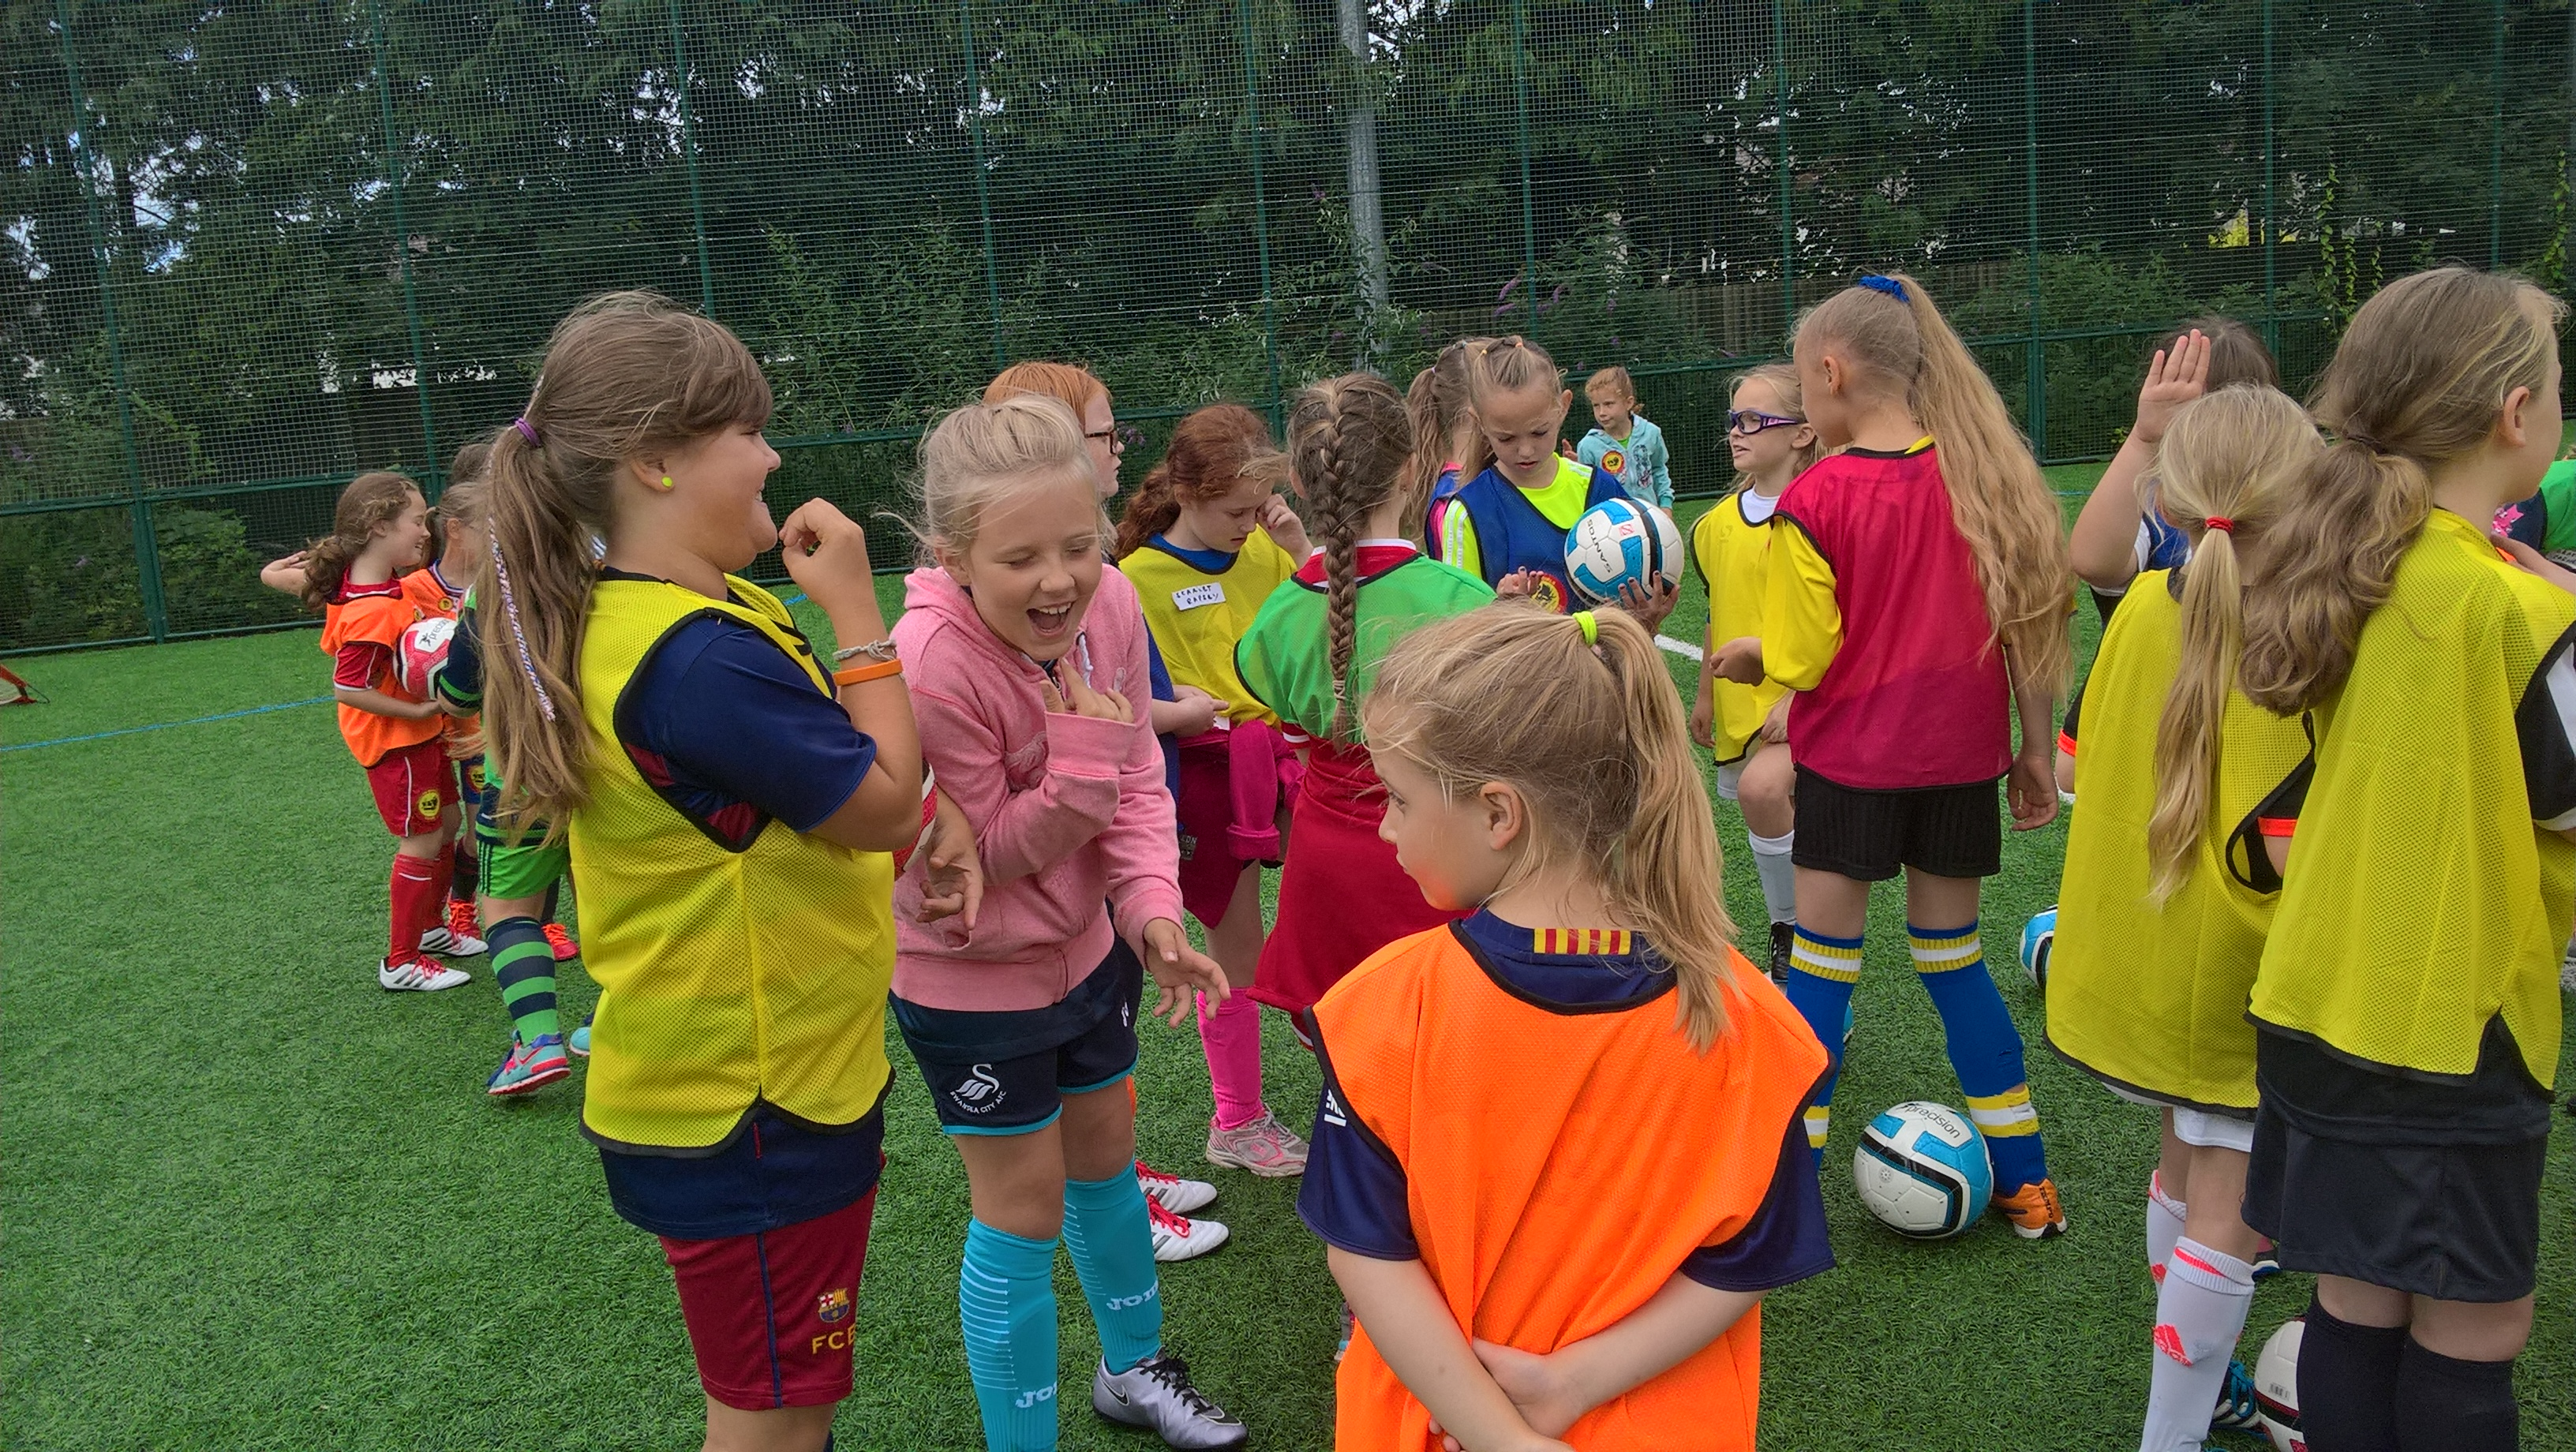 How to attract new female players to your club and keep them engaged